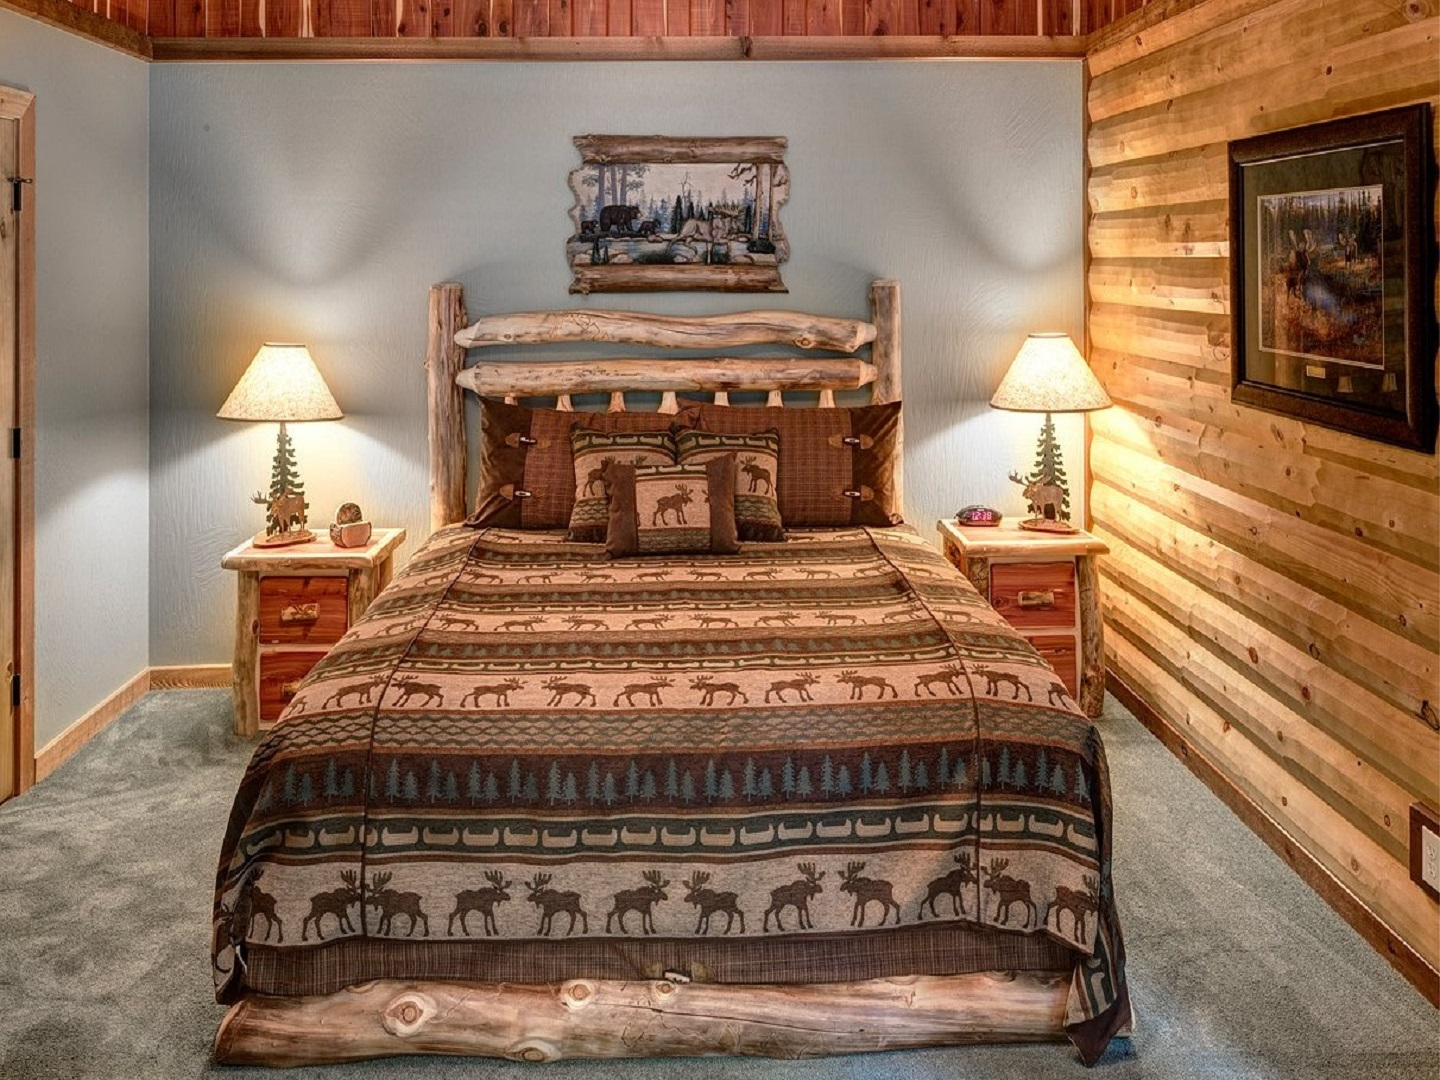 A bedroom with a large bed in a room at Lake Shore Cabins ON BEAVER LAKE.